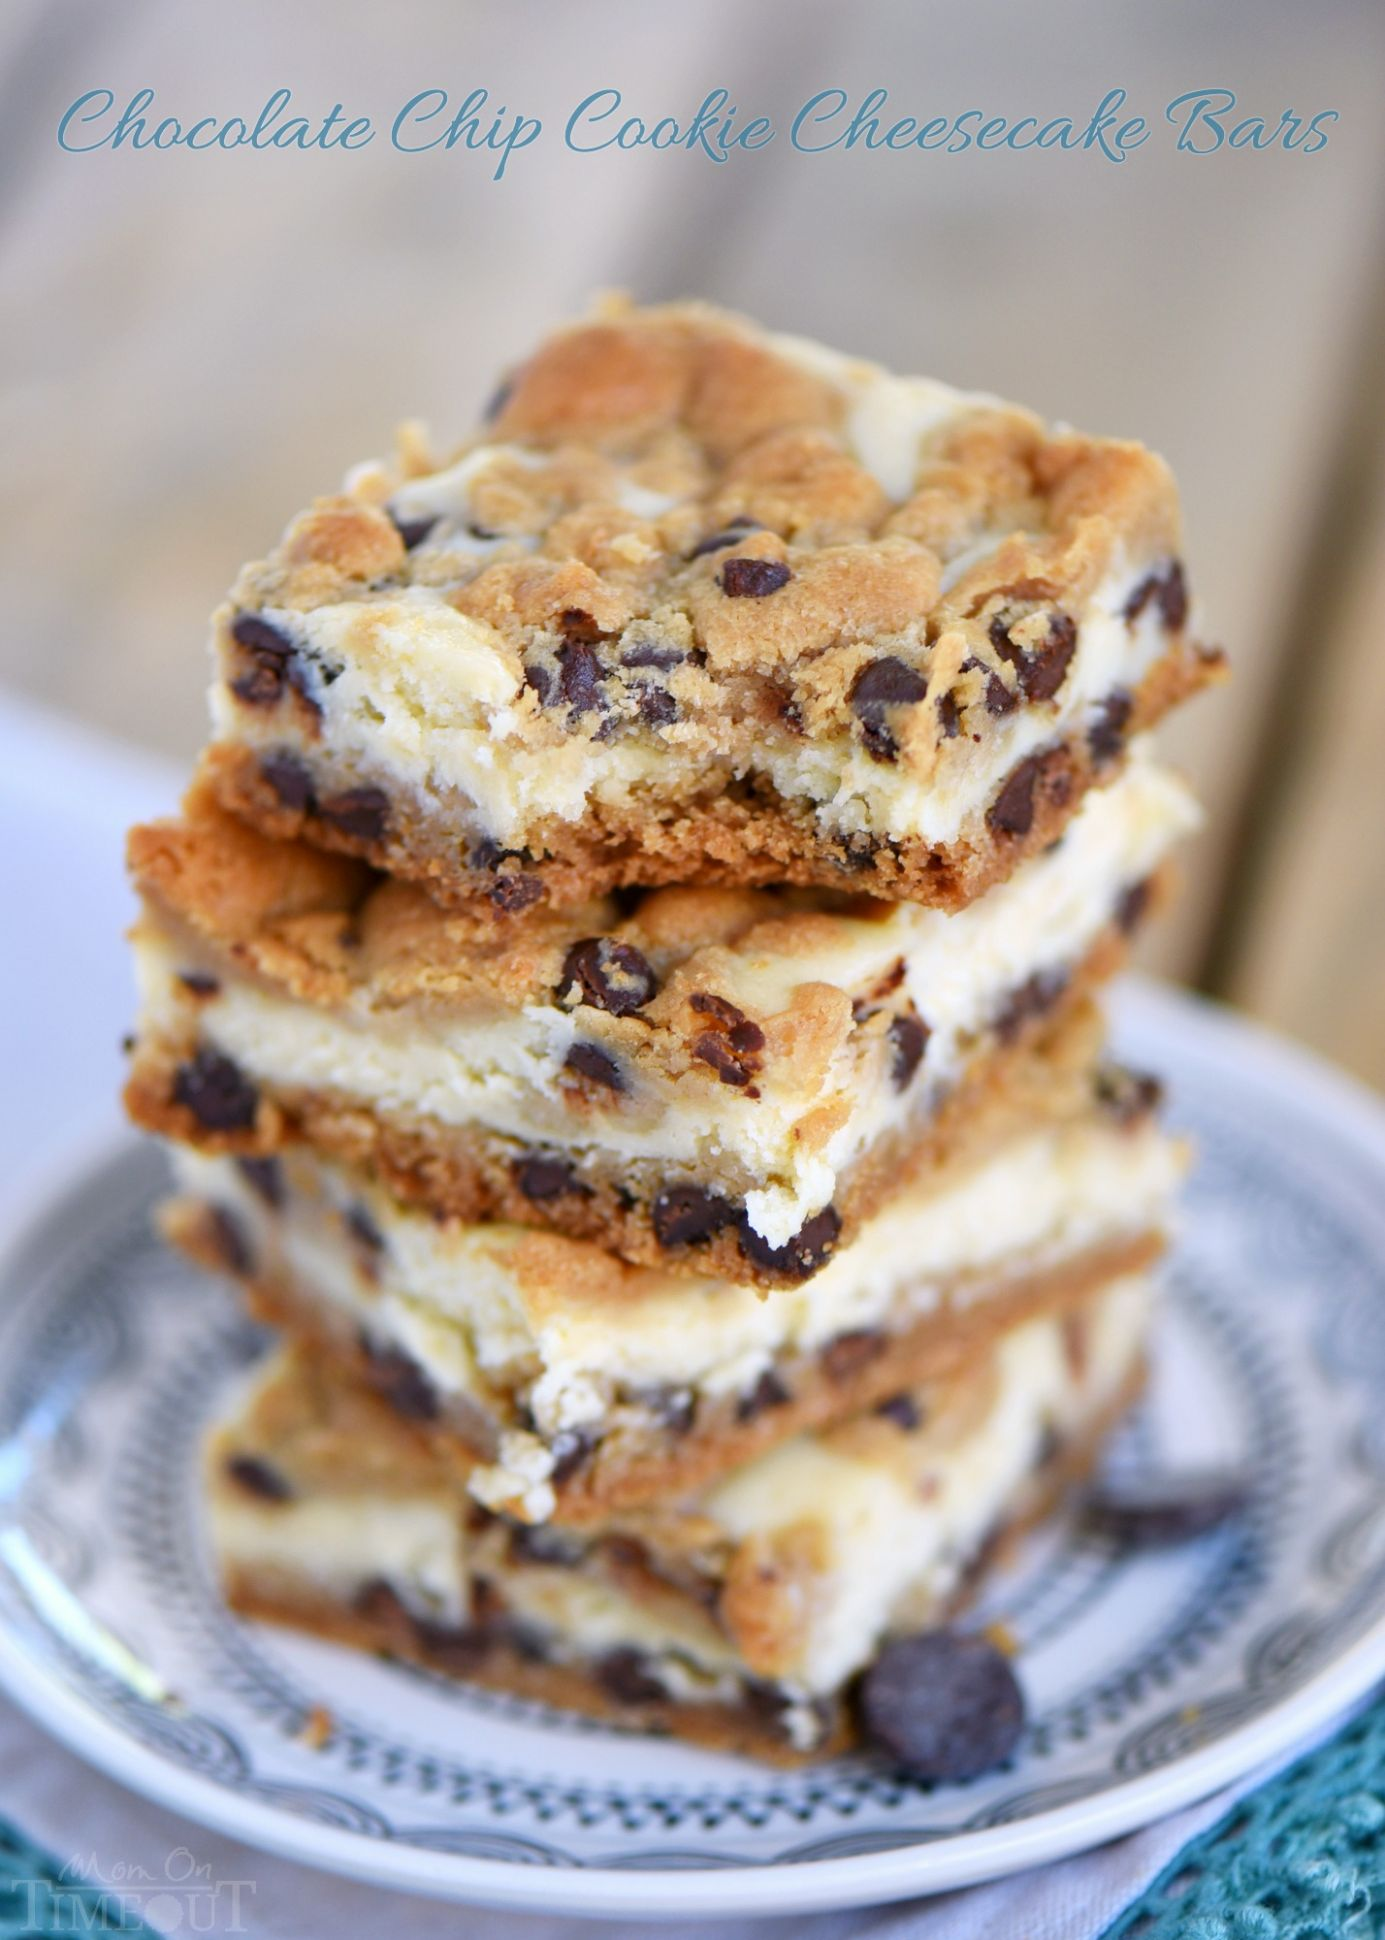 Chocolate Chip Cookie Cheesecake Bars - Recipes Desserts Easy